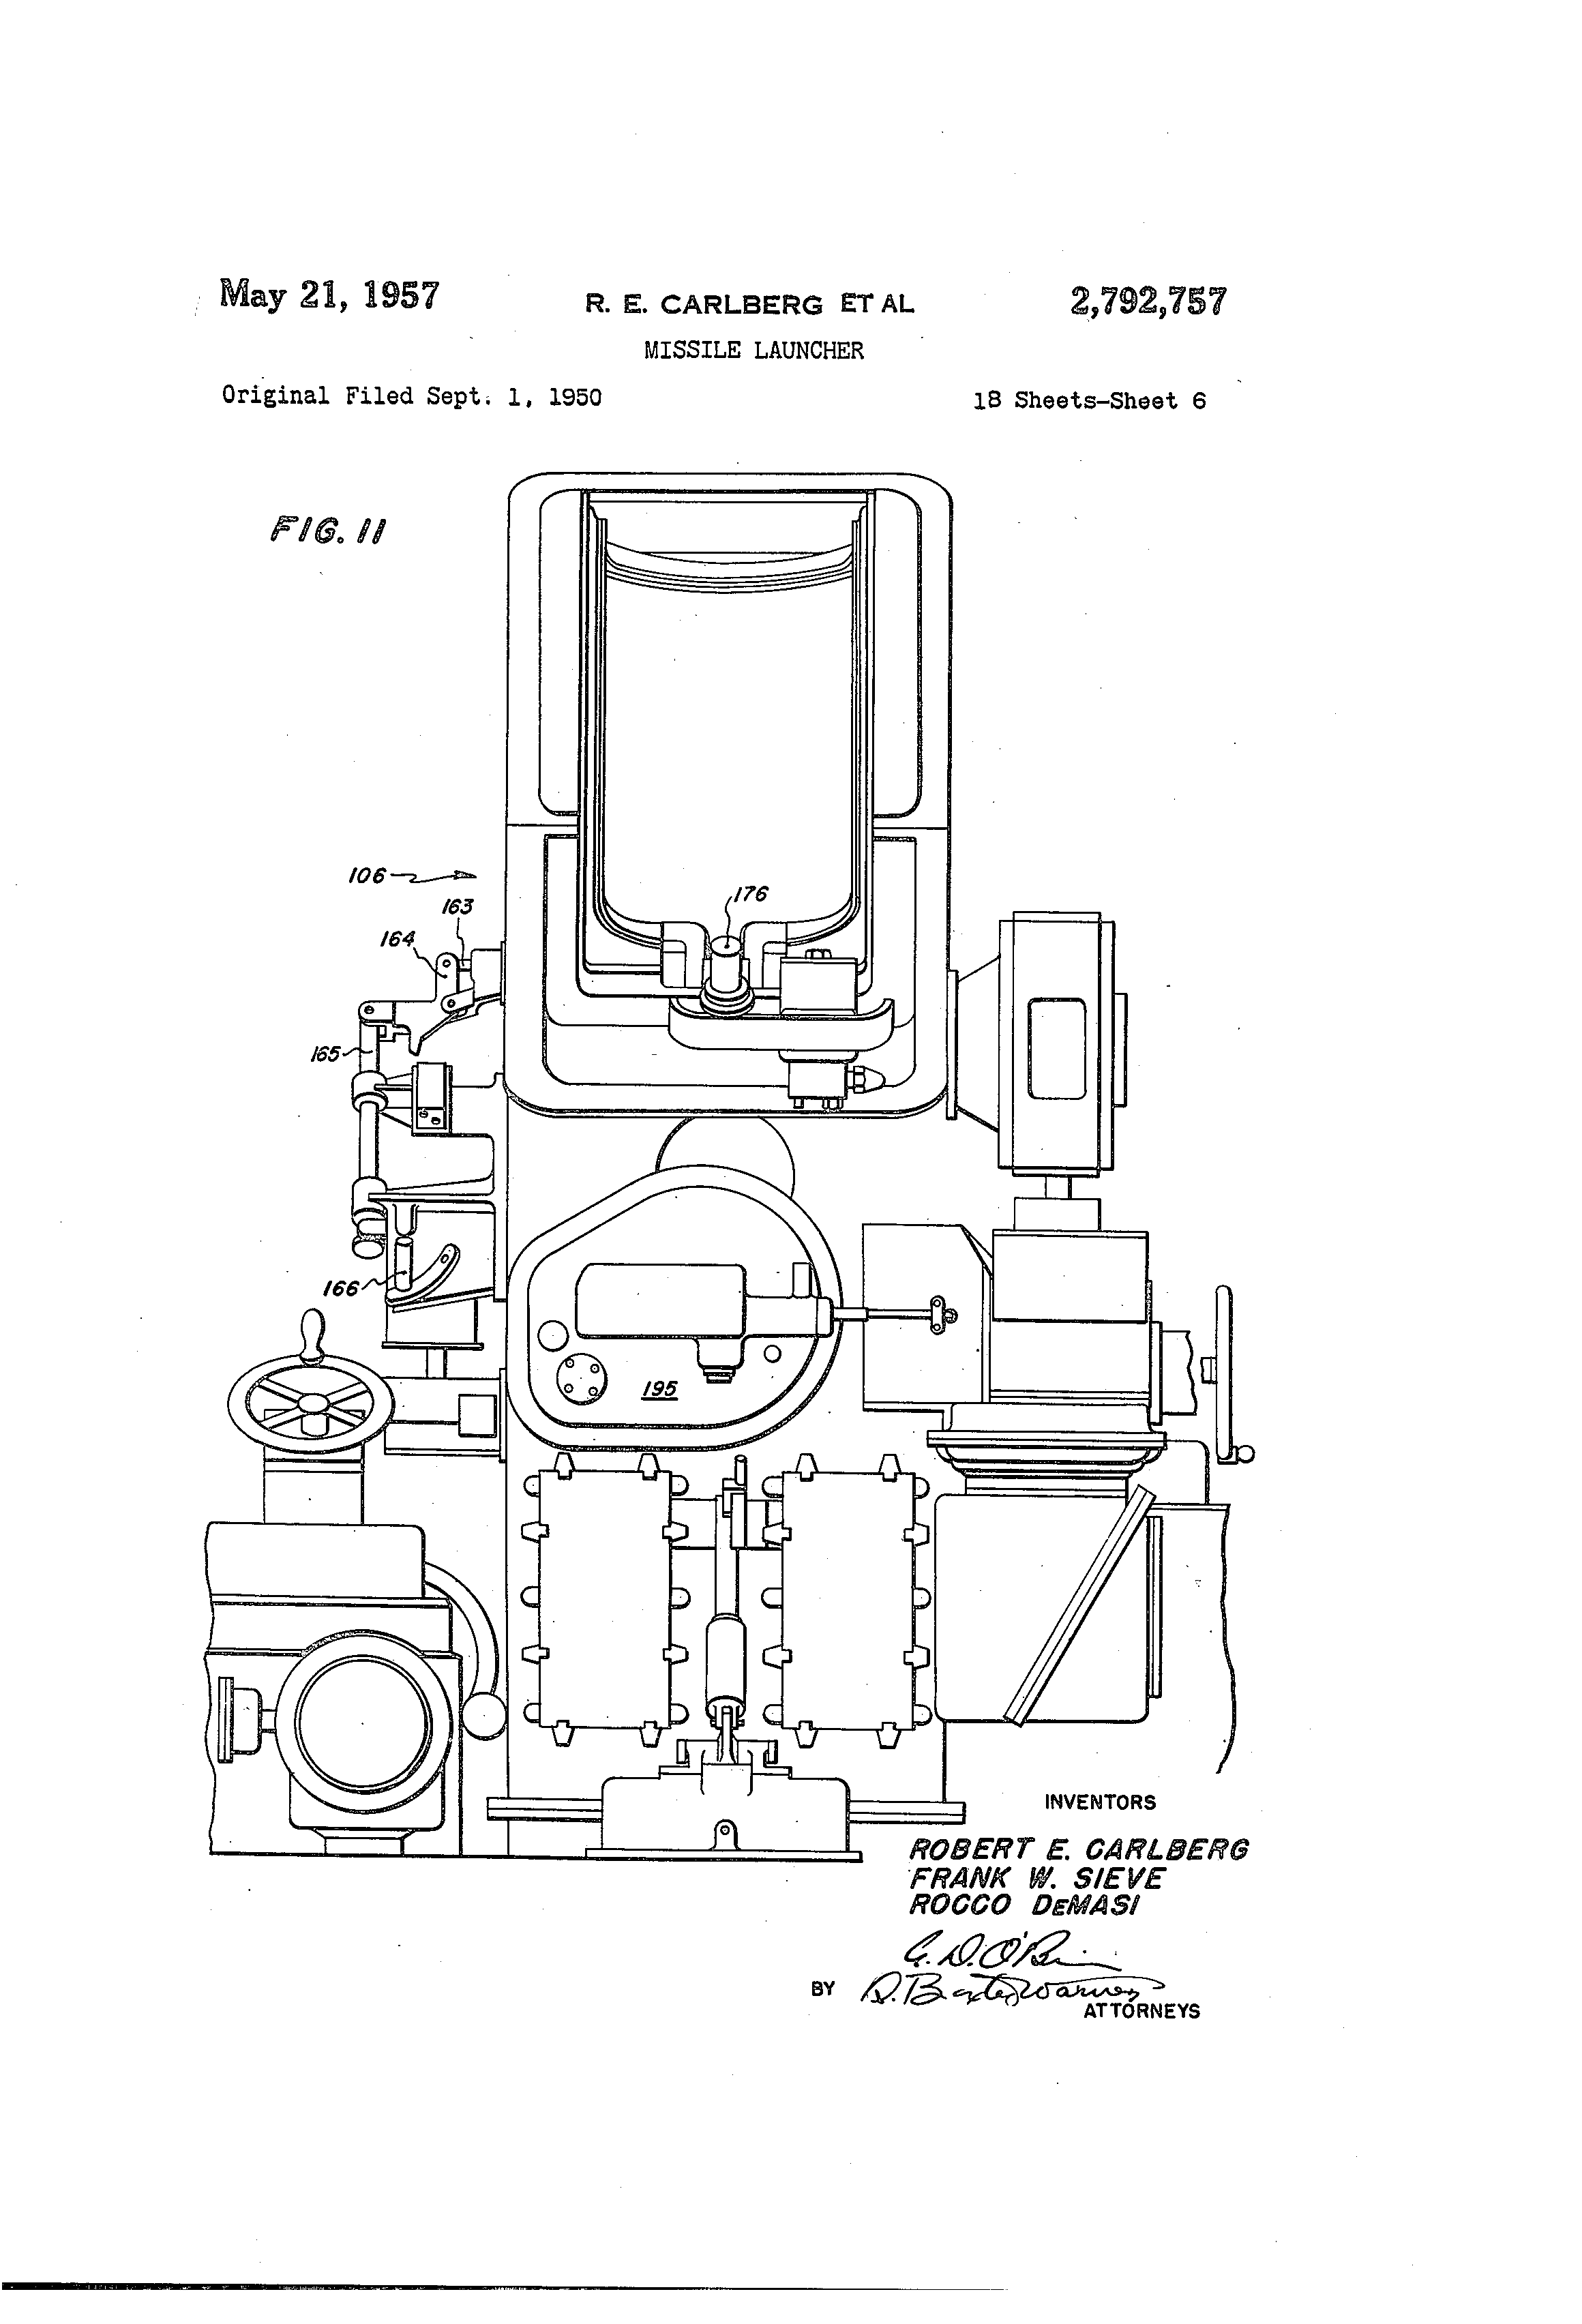 Us2792757 Missile Launcher Google Bobber Kz650 Wiring Diagram Patent Drawing